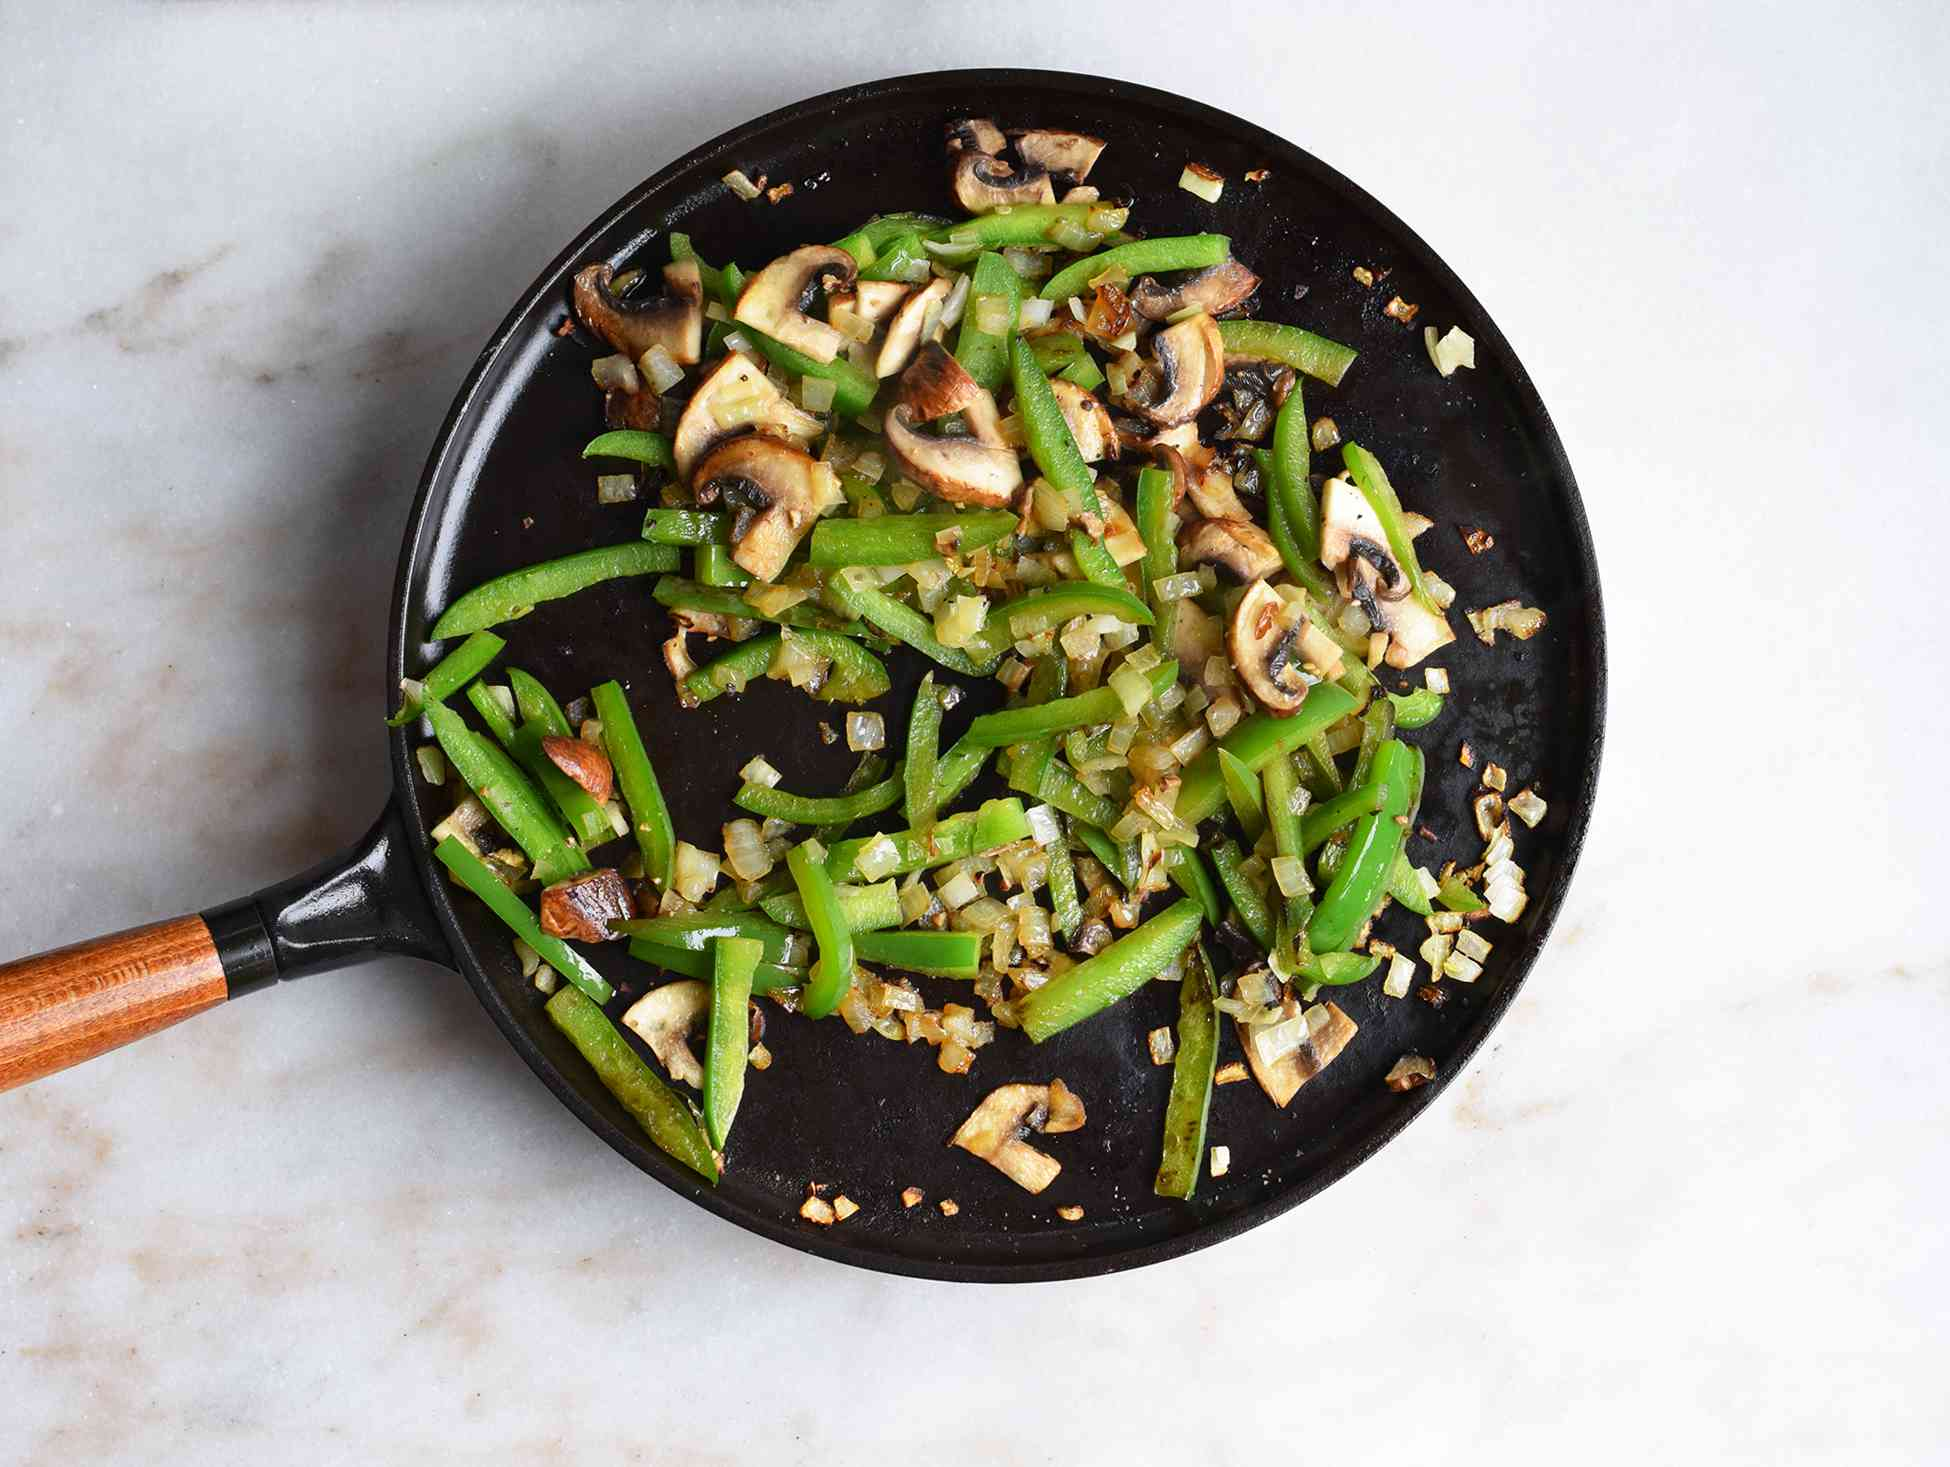 peppers, mushrooms, and onions sauteed in a pan